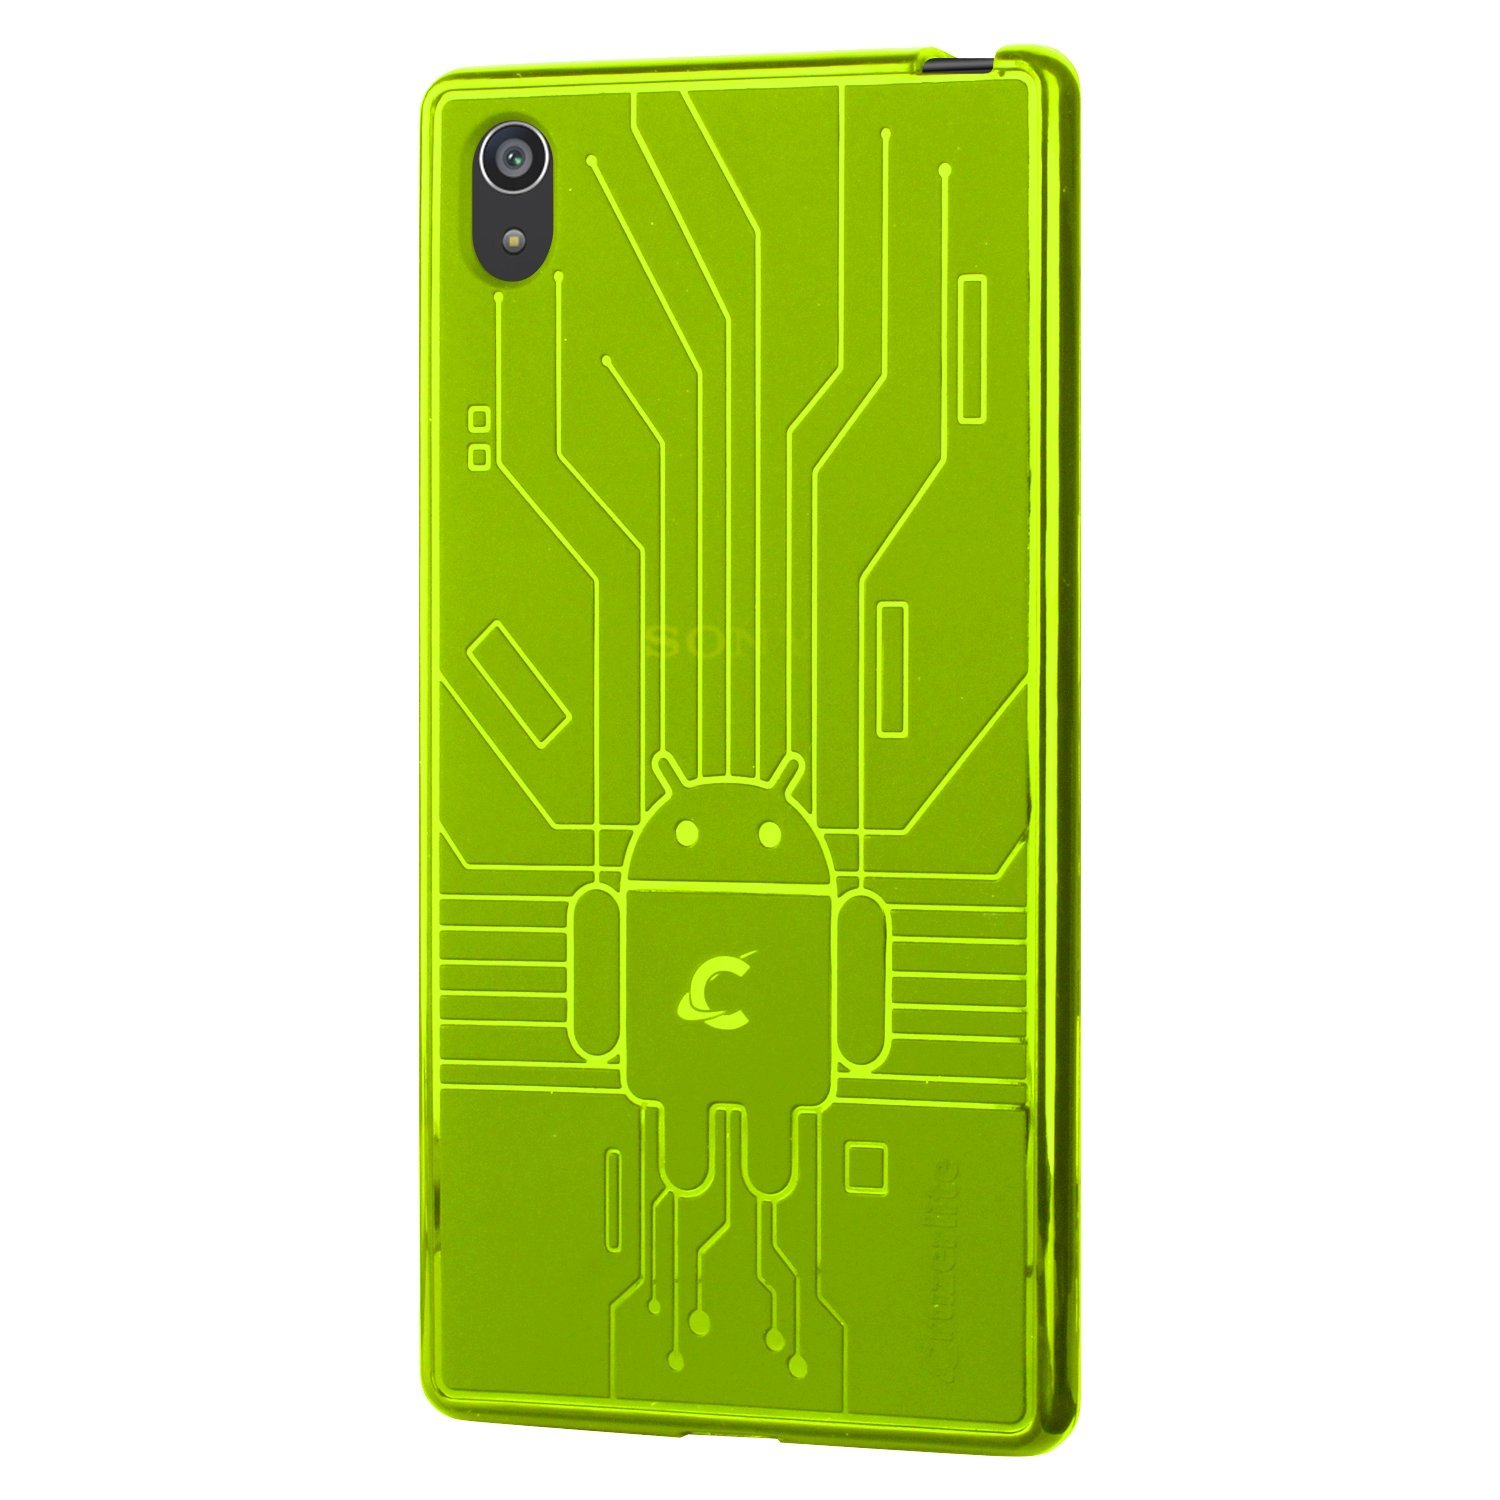 sony xperia e cases and covers never connected